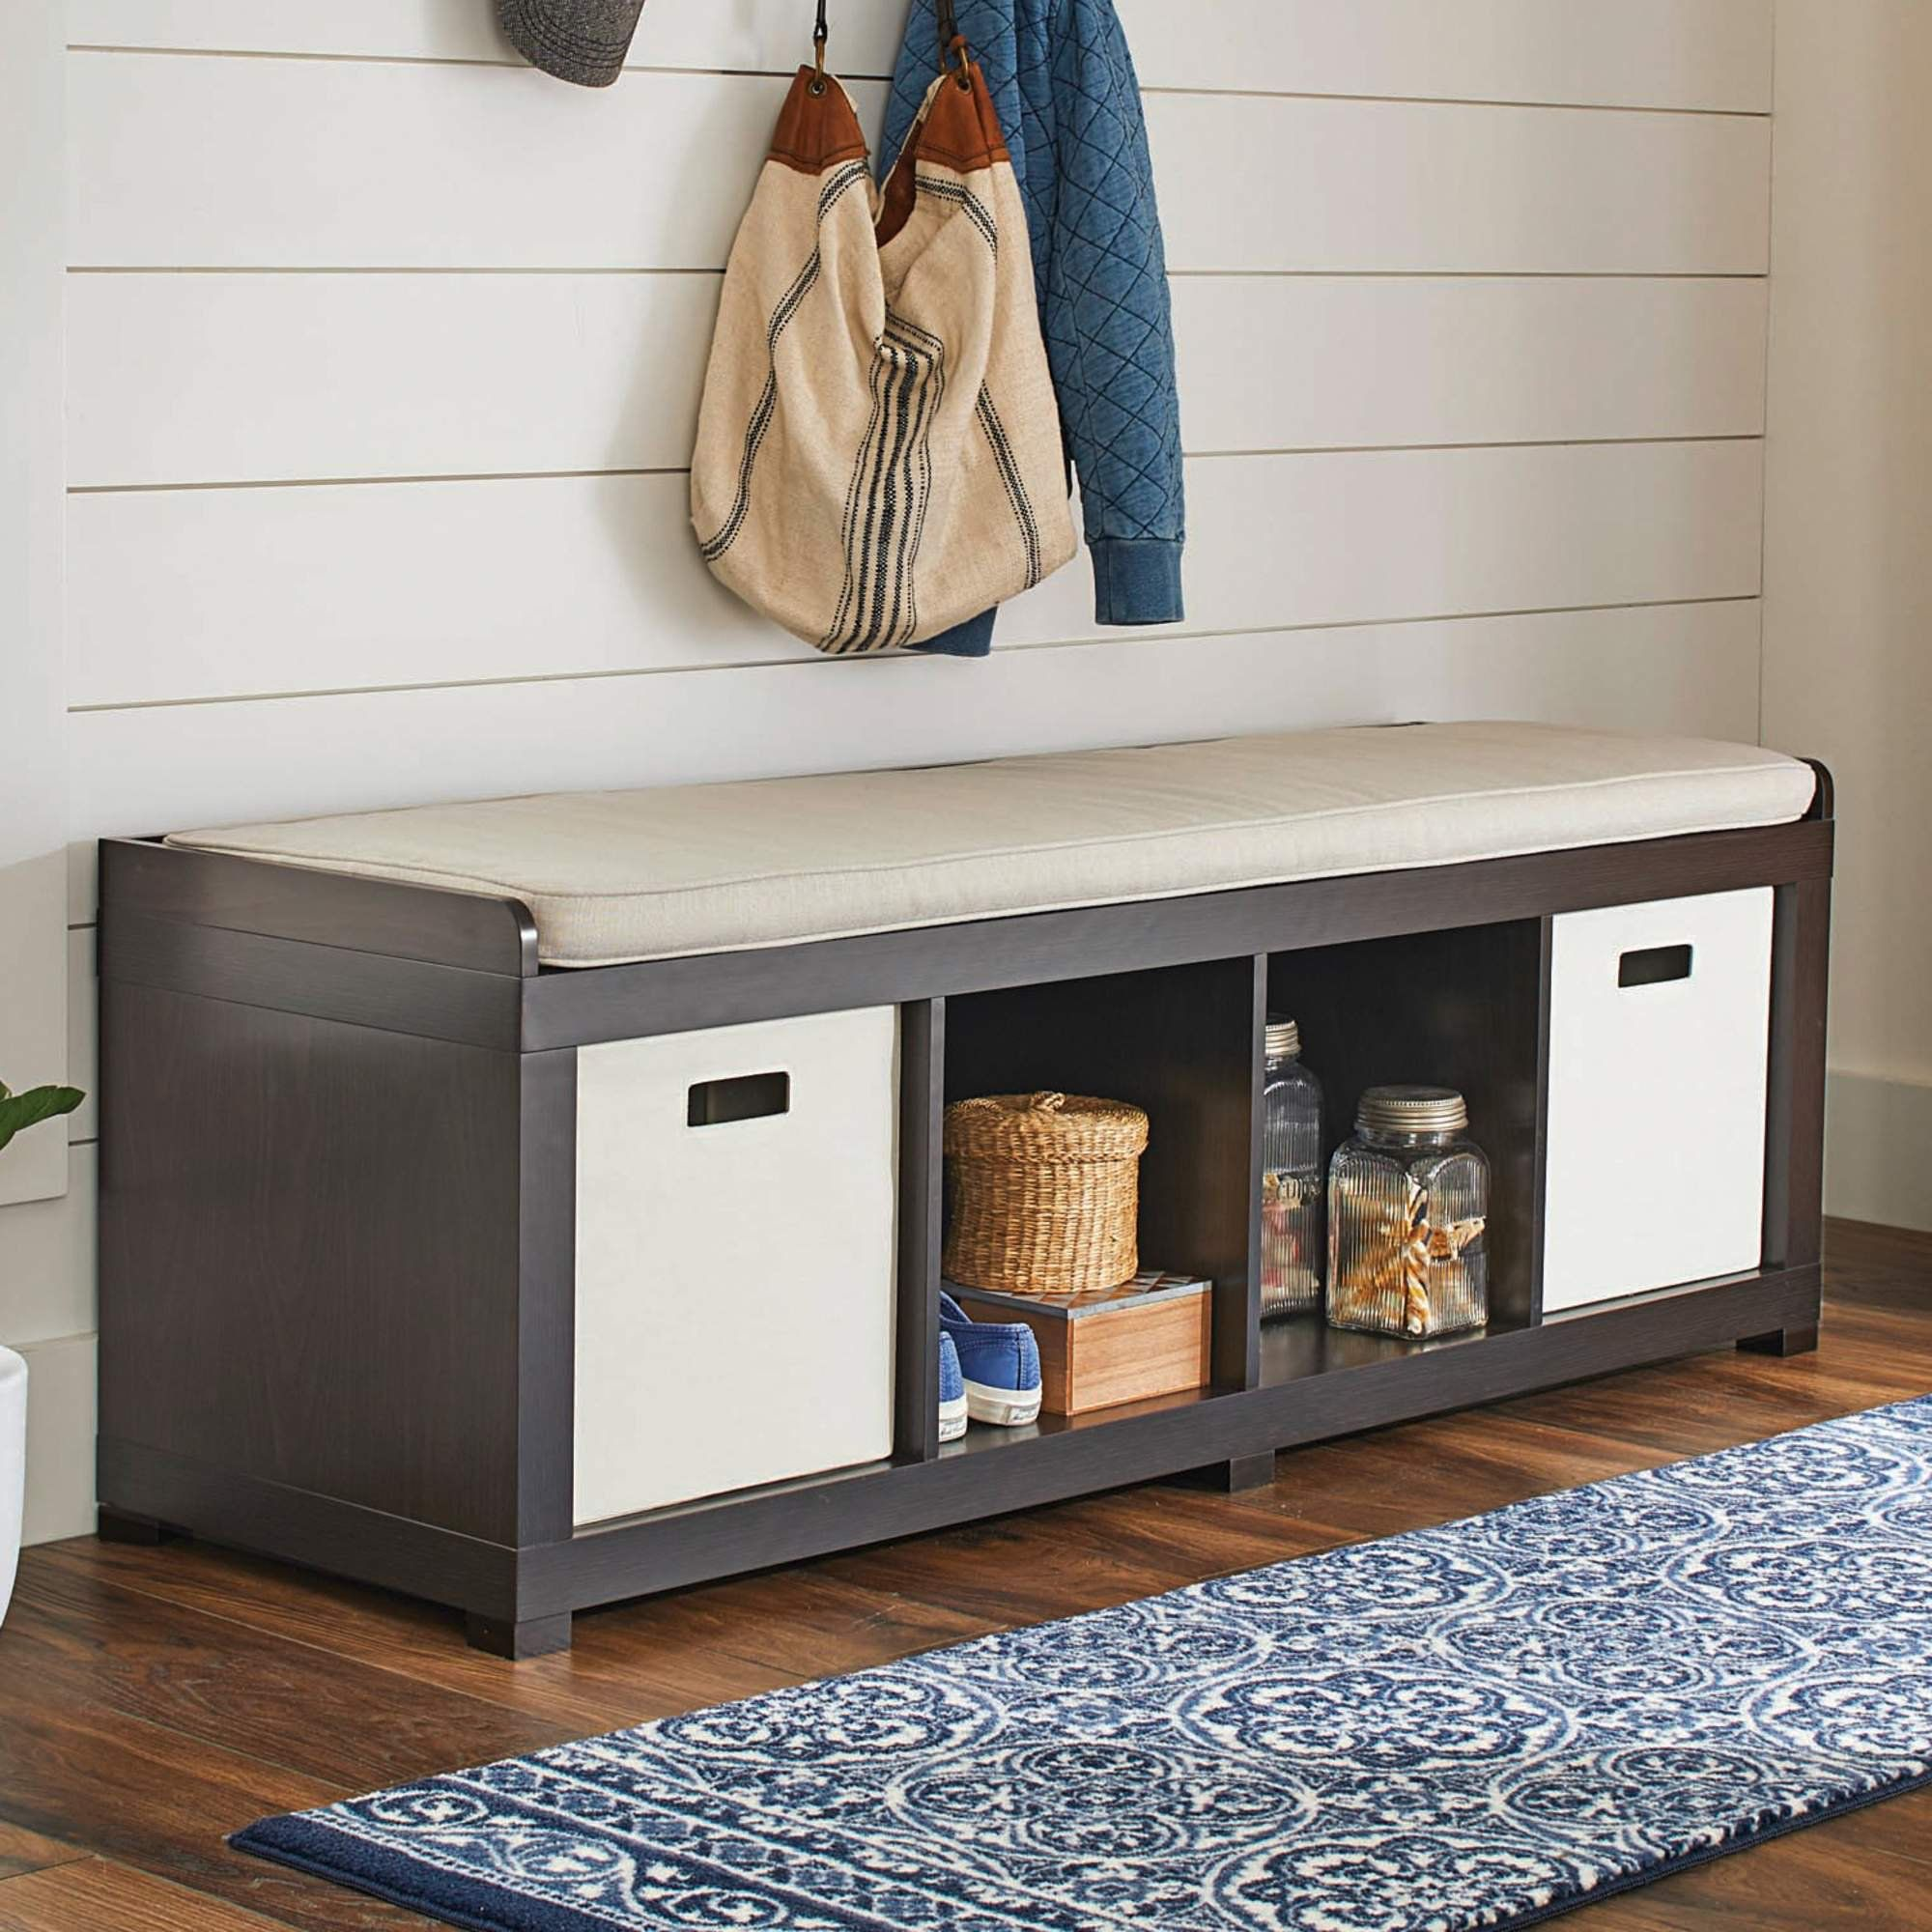 5f8f6480c30e73961ce620f084dad164 - Better Homes And Gardens Diy Bench Seat With Storage